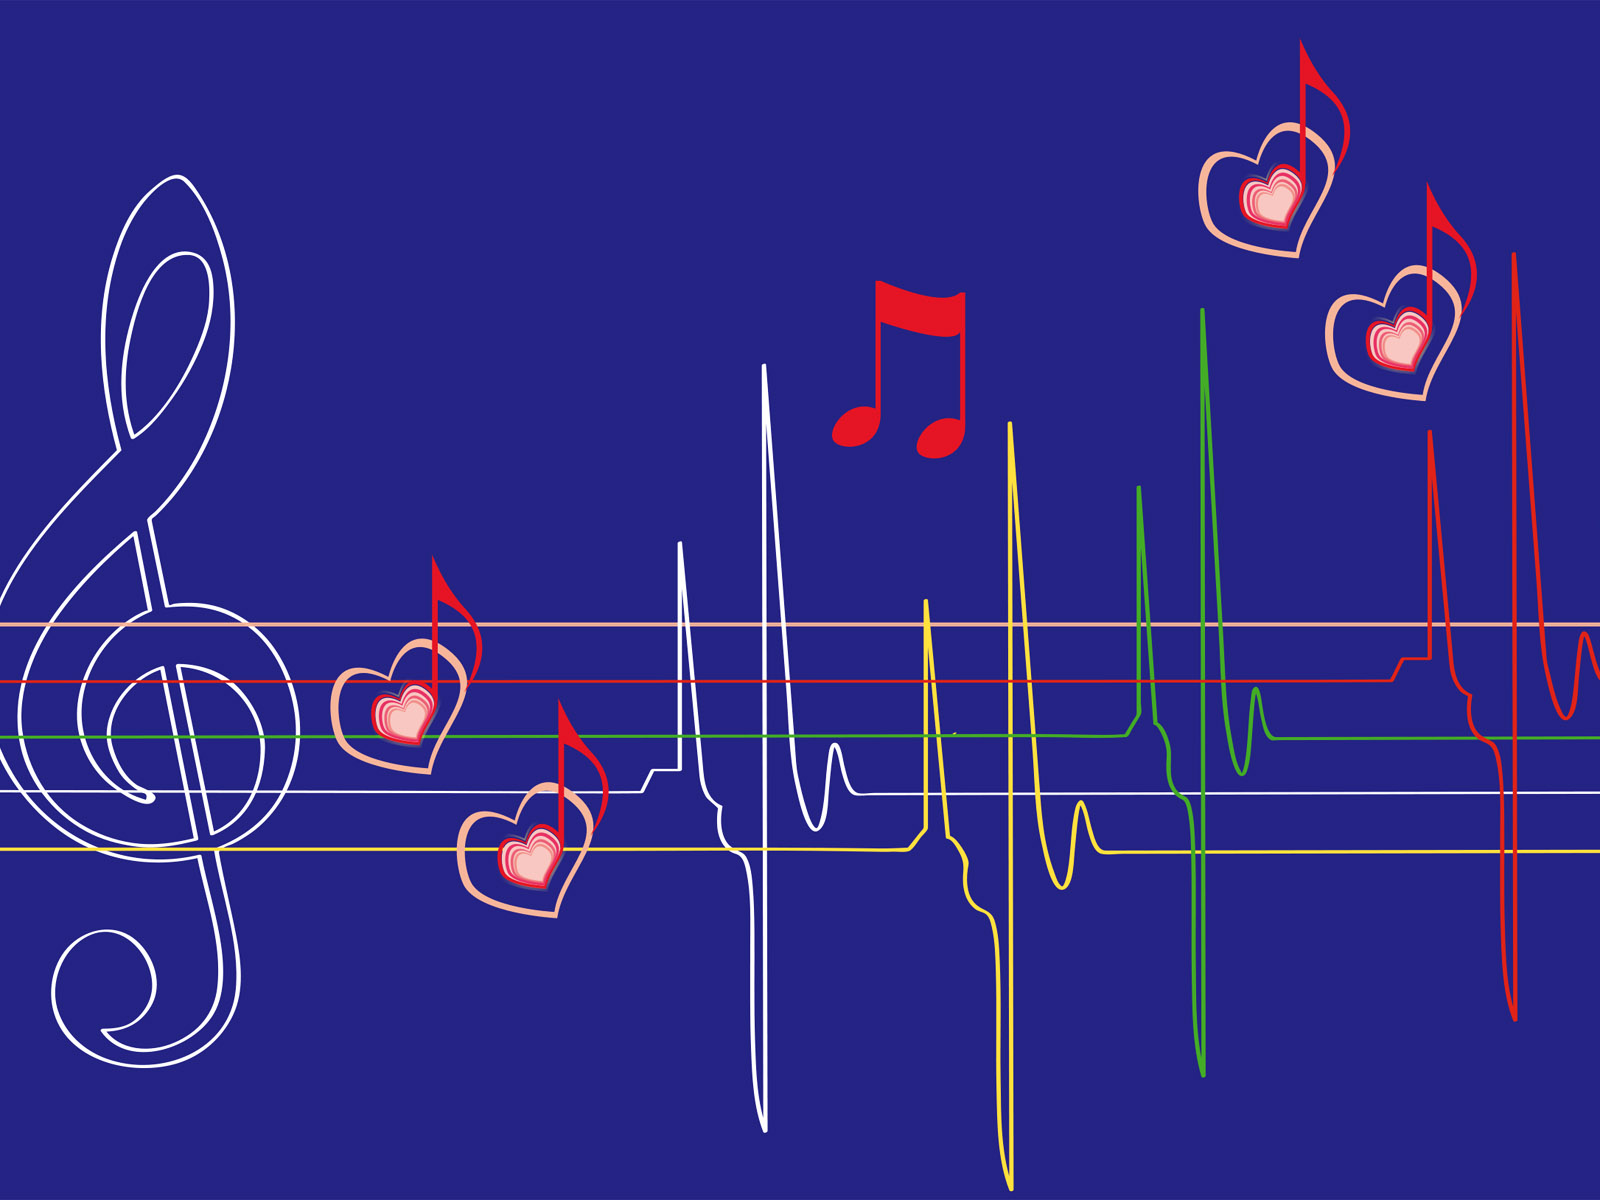 Abstract-Musical-Notes-Backgrounds.jpg